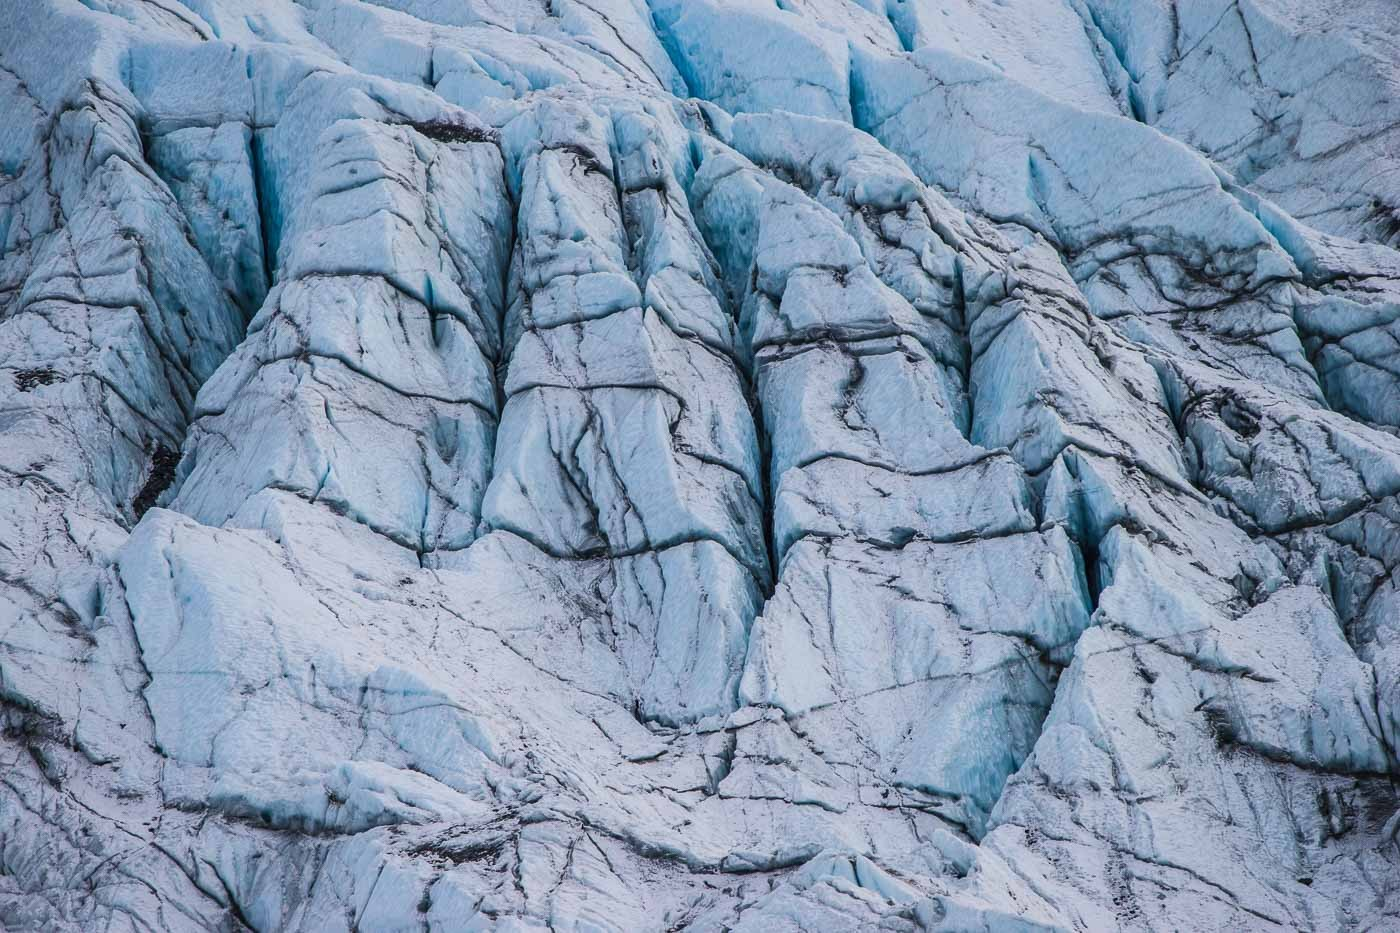 Matanuska Glacier, Alaska with the Tamron 150-600mm f/5-6.3